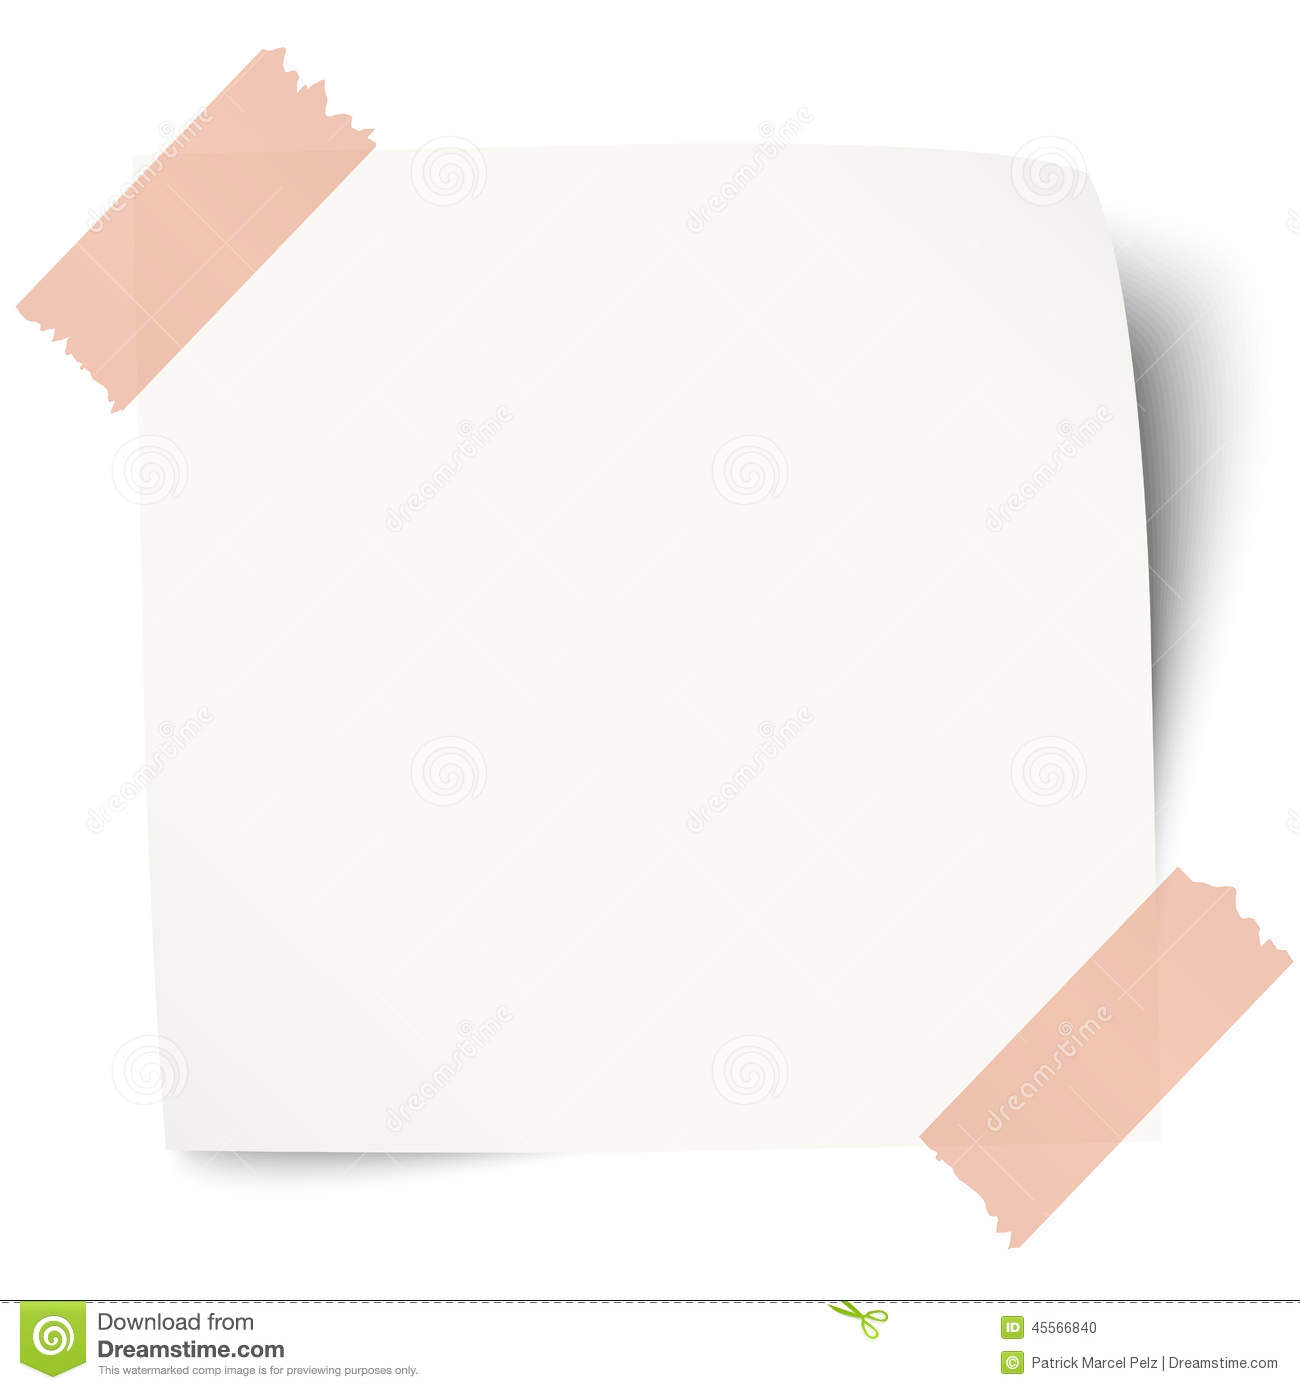 White Sticky Note With Adhesive Tape Stock Vector - Image: 45566840